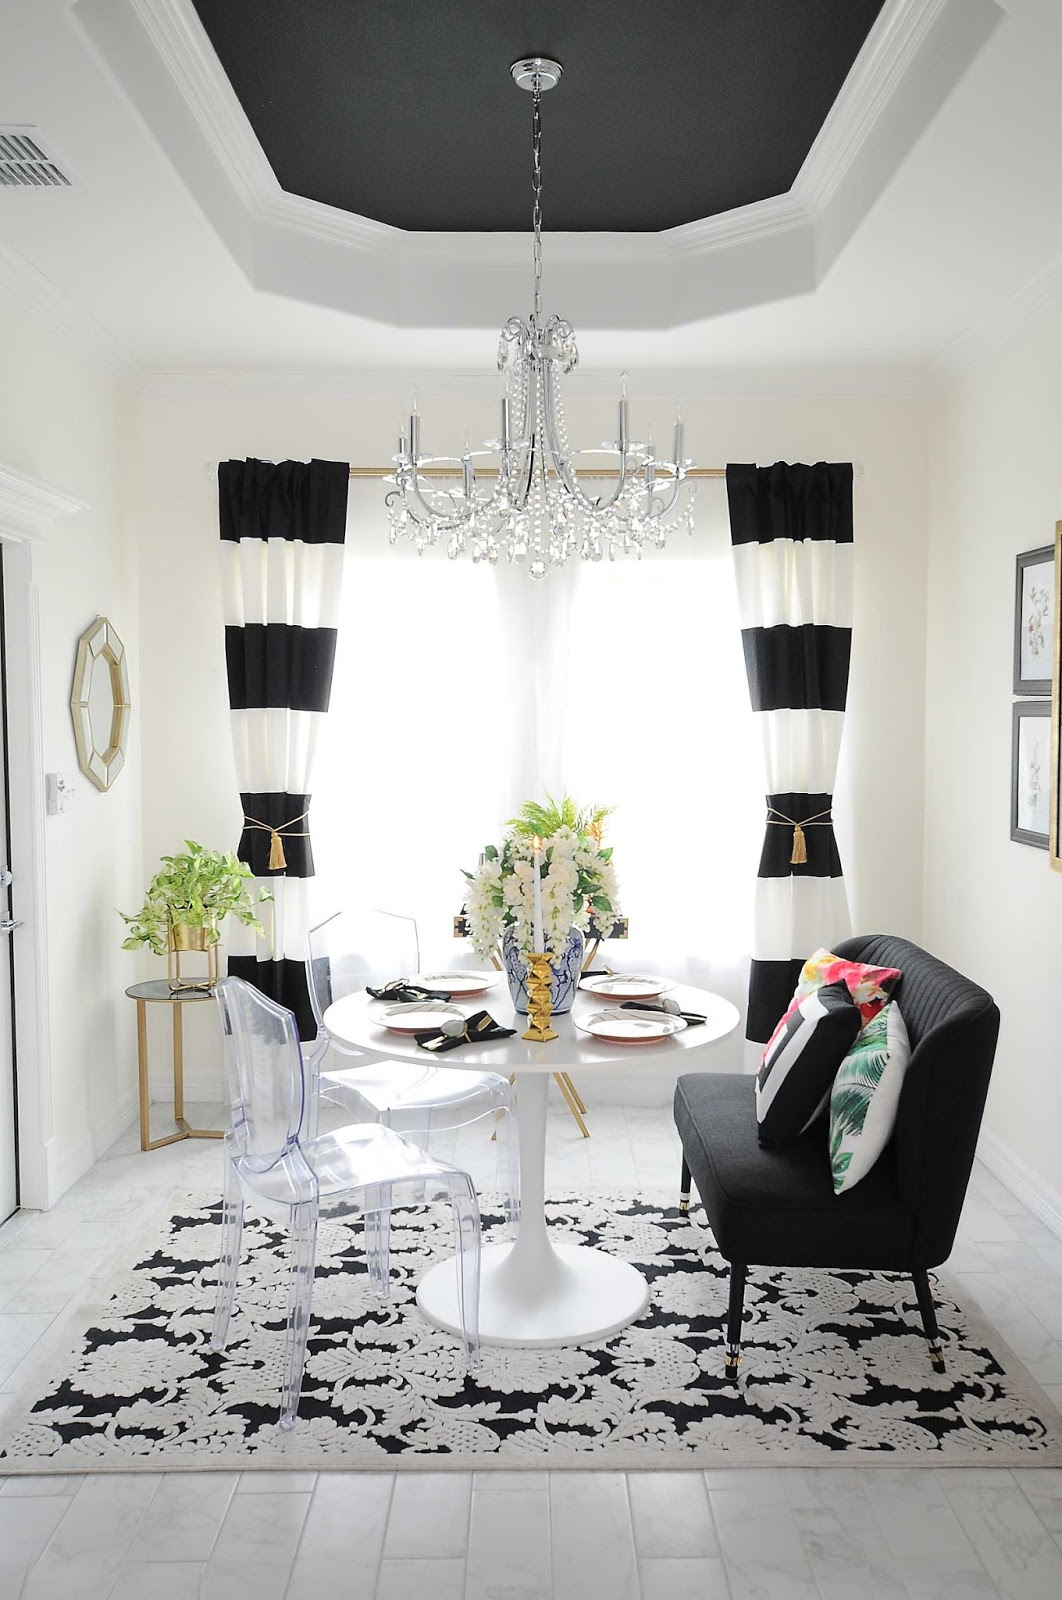 Black and white striped curtains frame a small dining room space with audubon, floral and botanical decor accents.